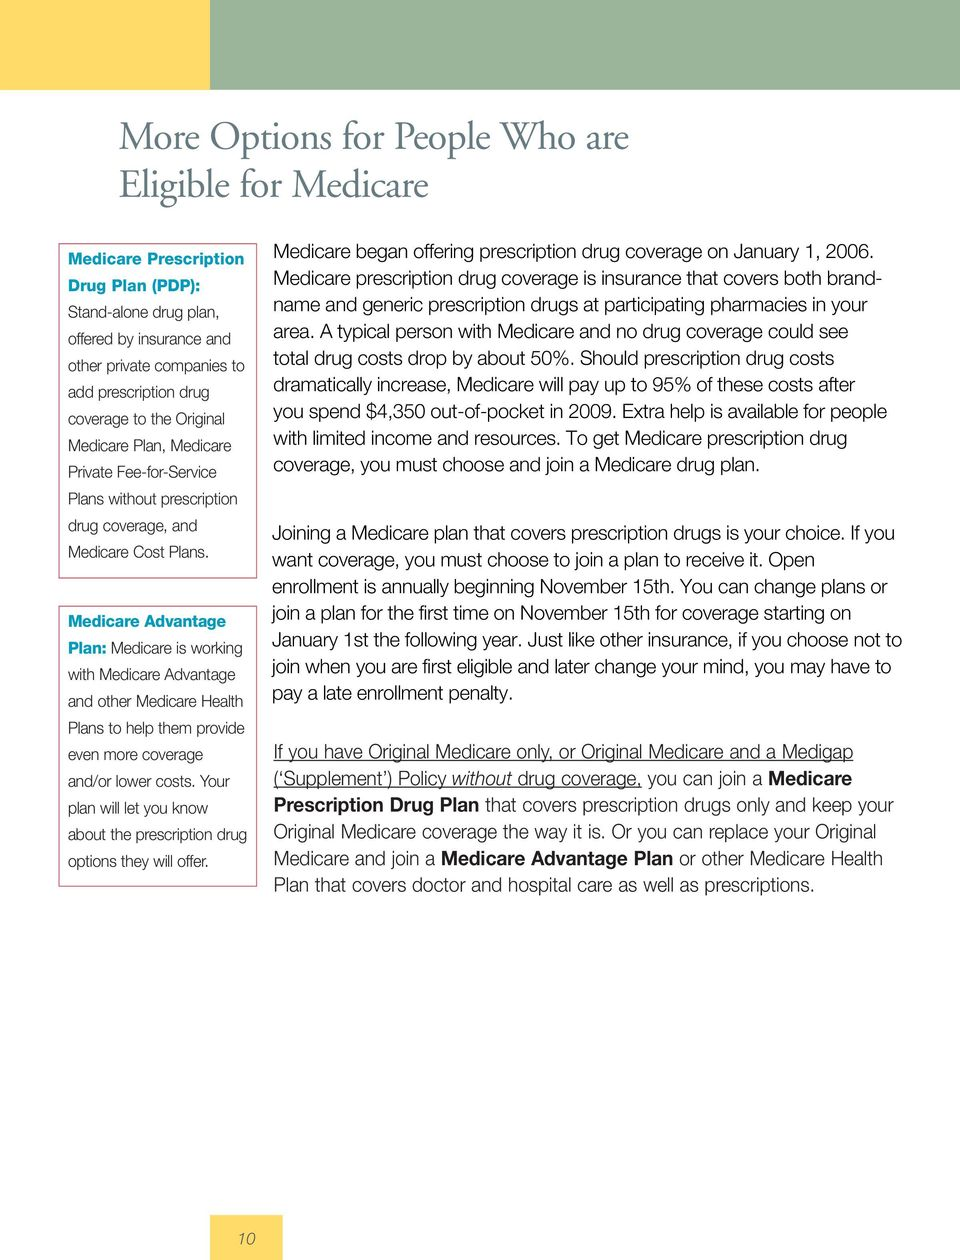 Medicare Advantage Plan: Medicare is working with Medicare Advantage and other Medicare Health Plans to help them provide even more coverage and/or lower costs.